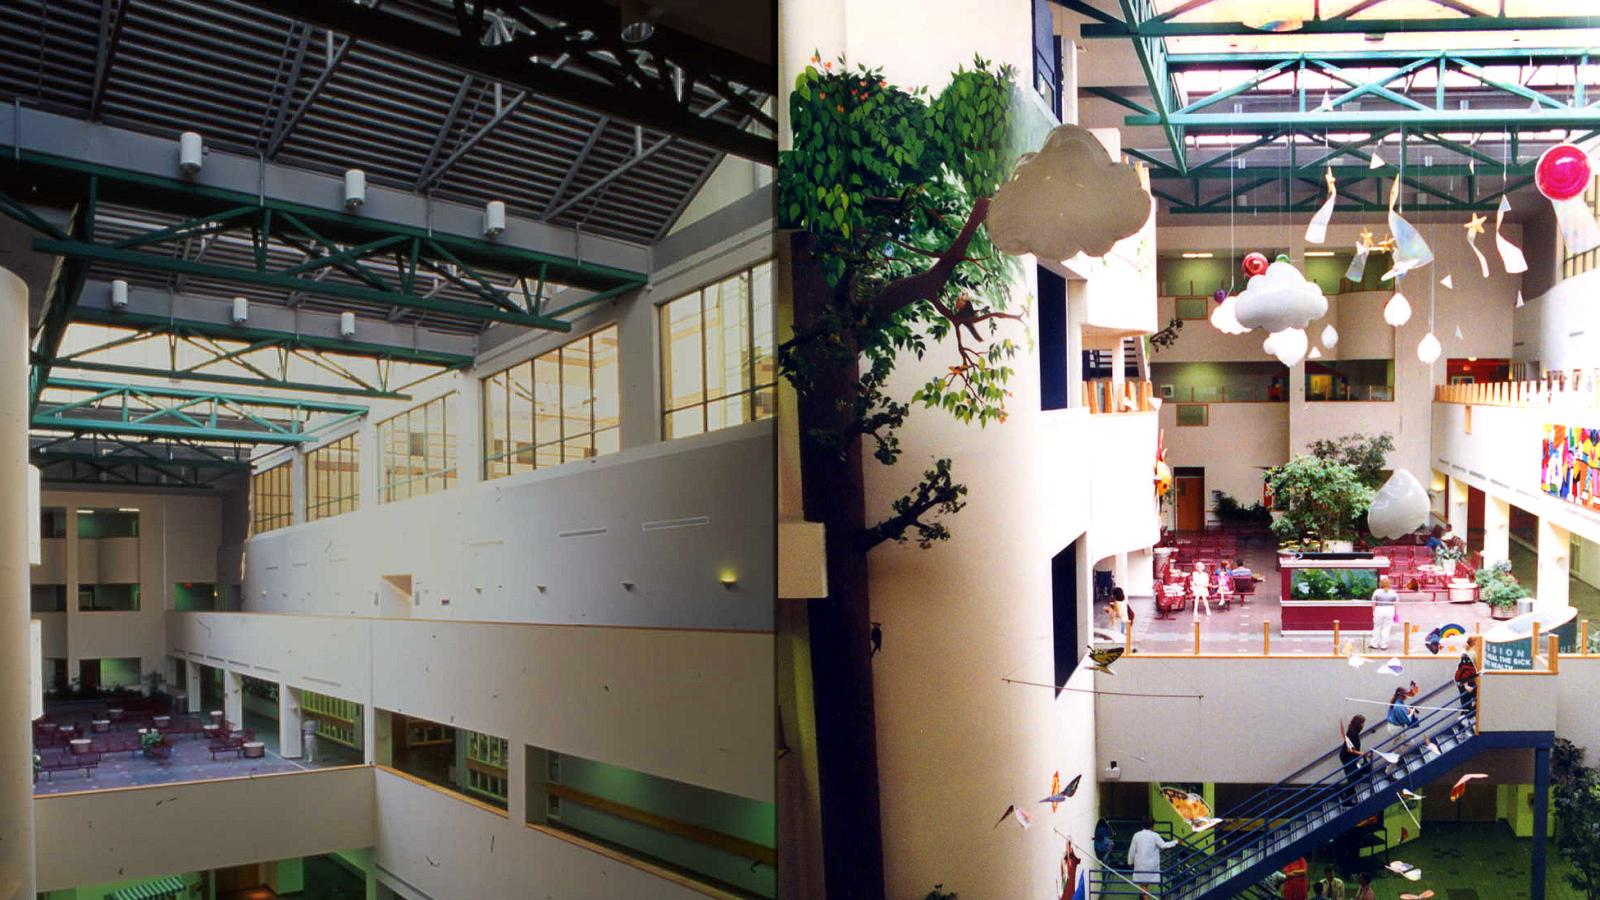 Two photos of a section of the hospital before and after redesign.